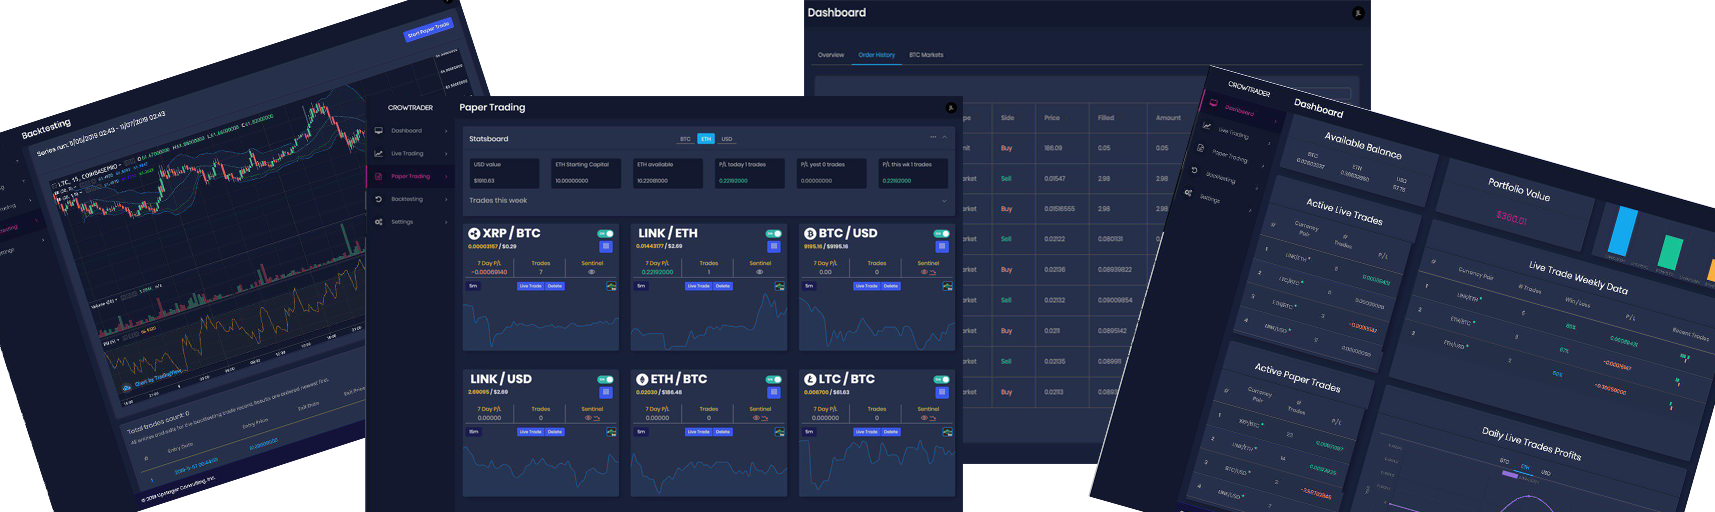 Algorithmic Crypto Trading Bot Now With CoinBasePro & Binance!